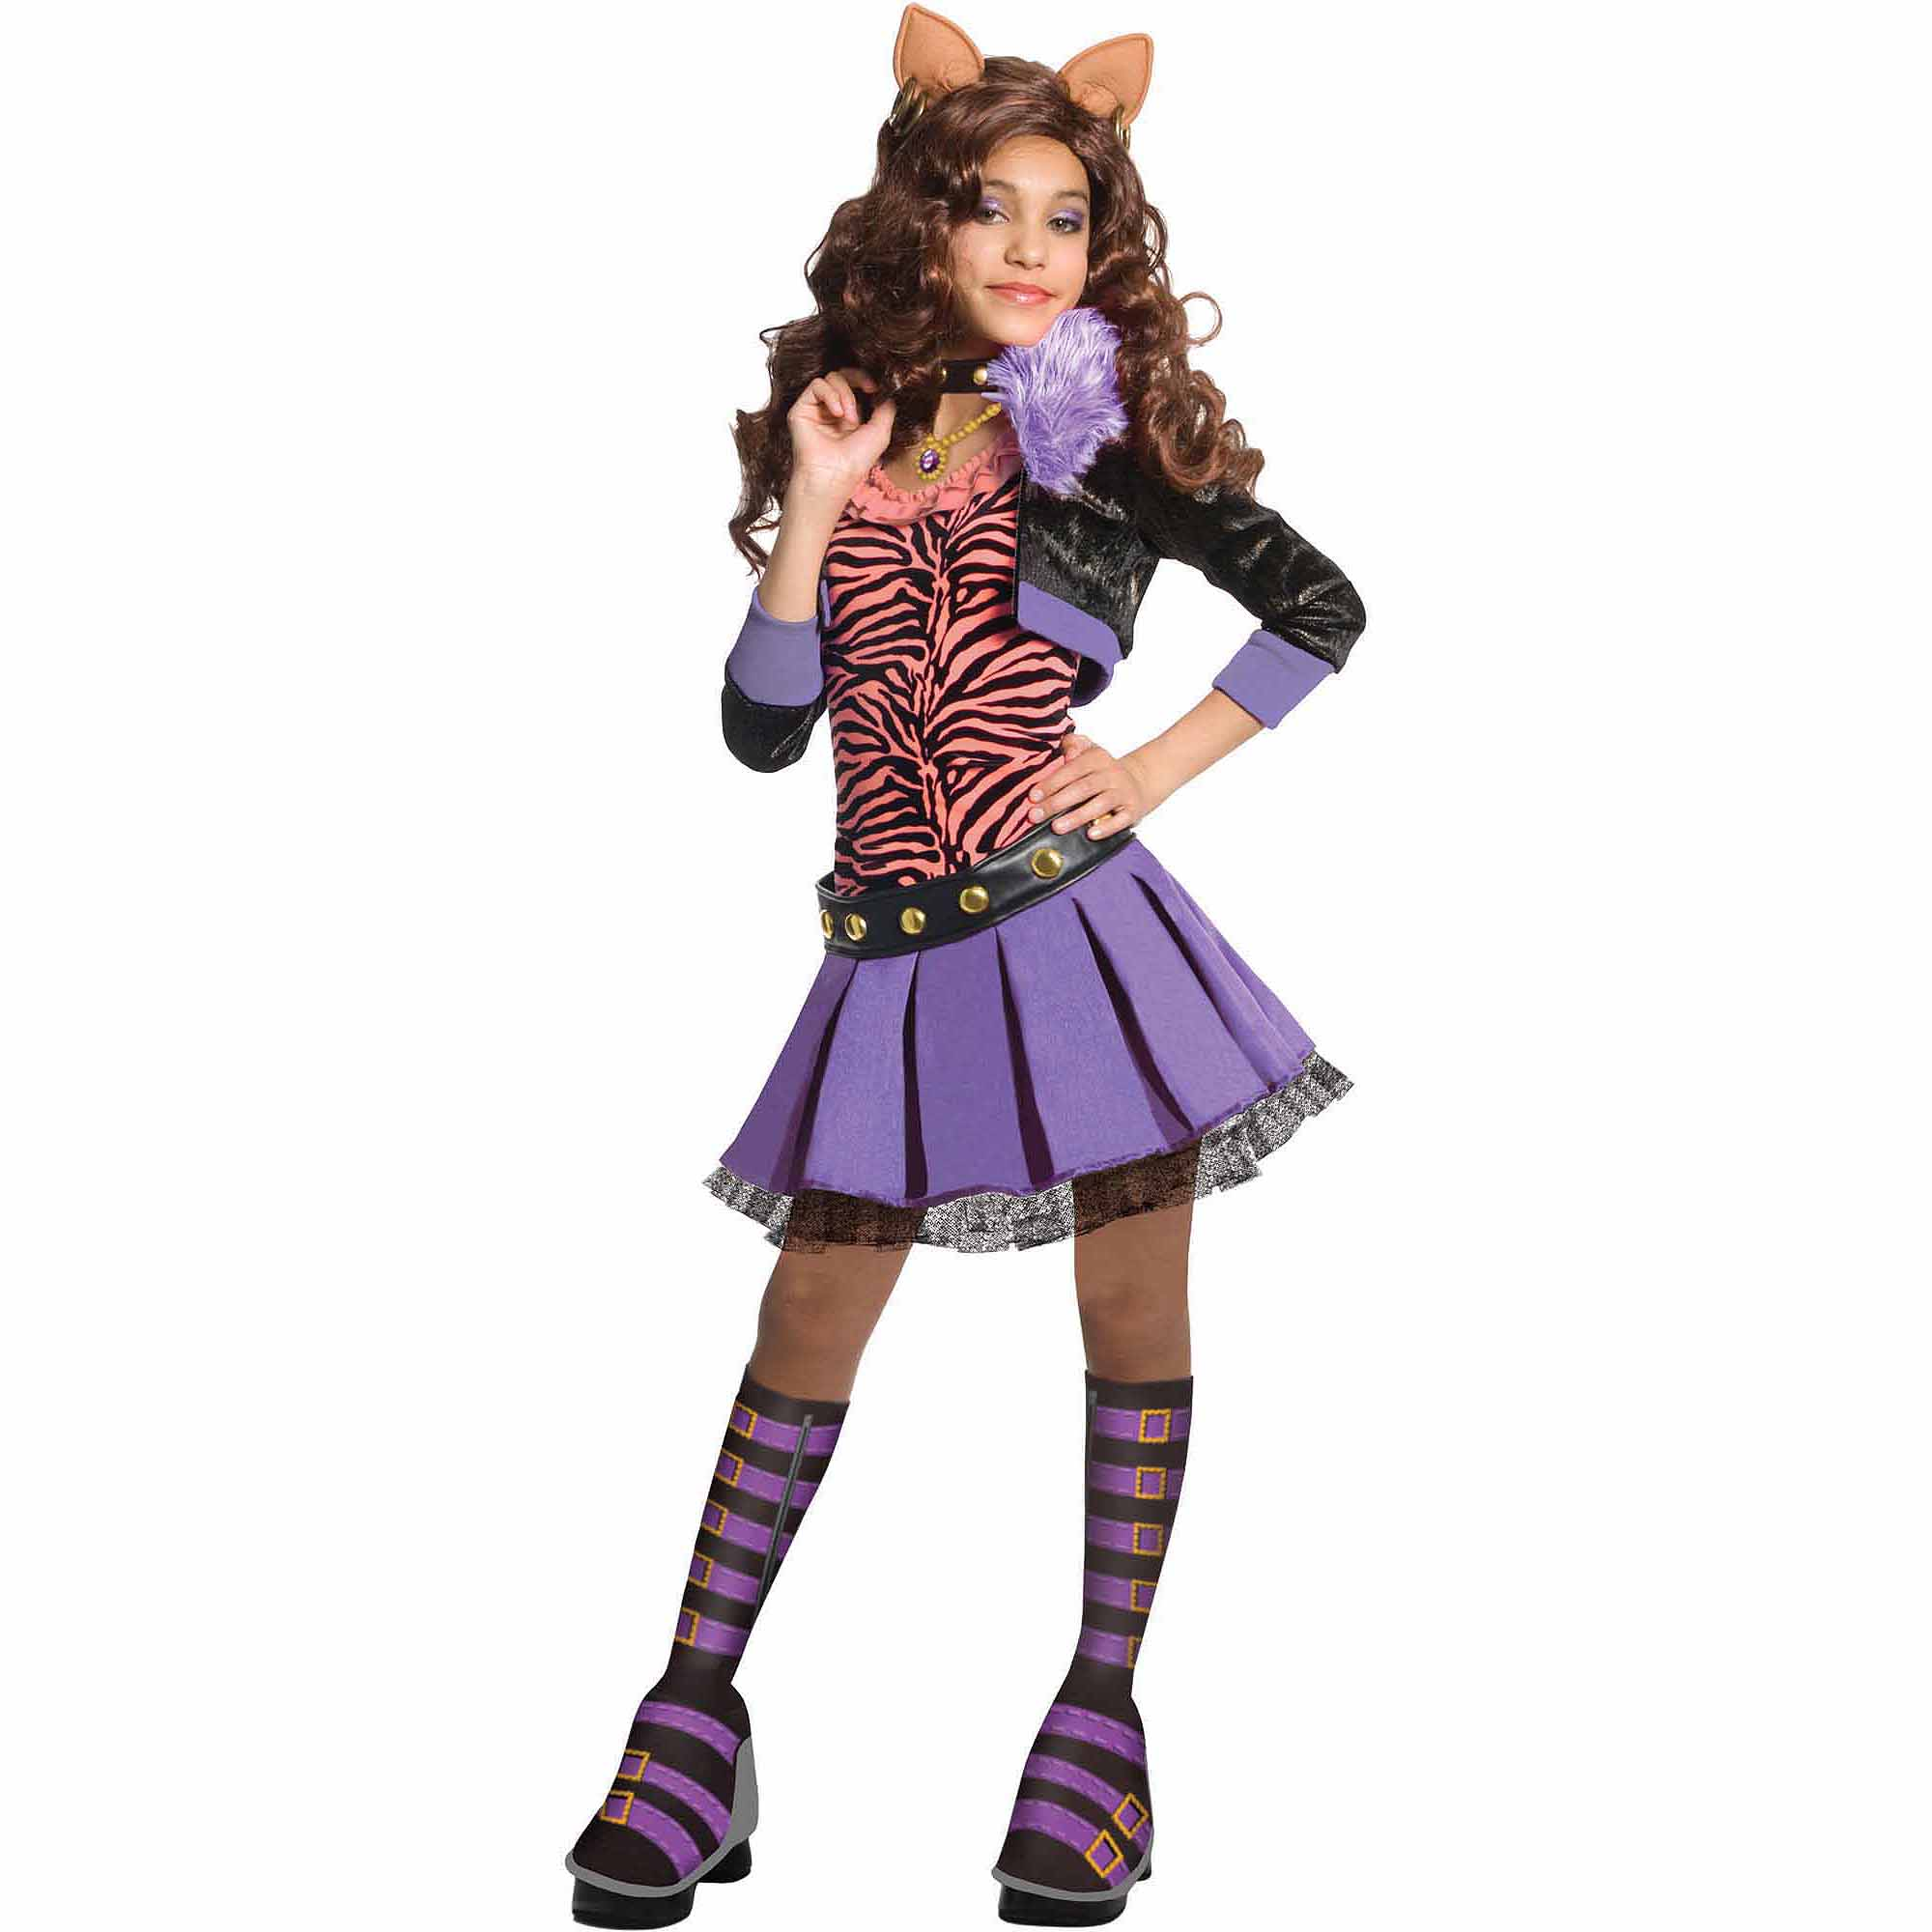 monster high clawdeen wolf child halloween costume walmartcom - Clawdeen Wolf Halloween Costume